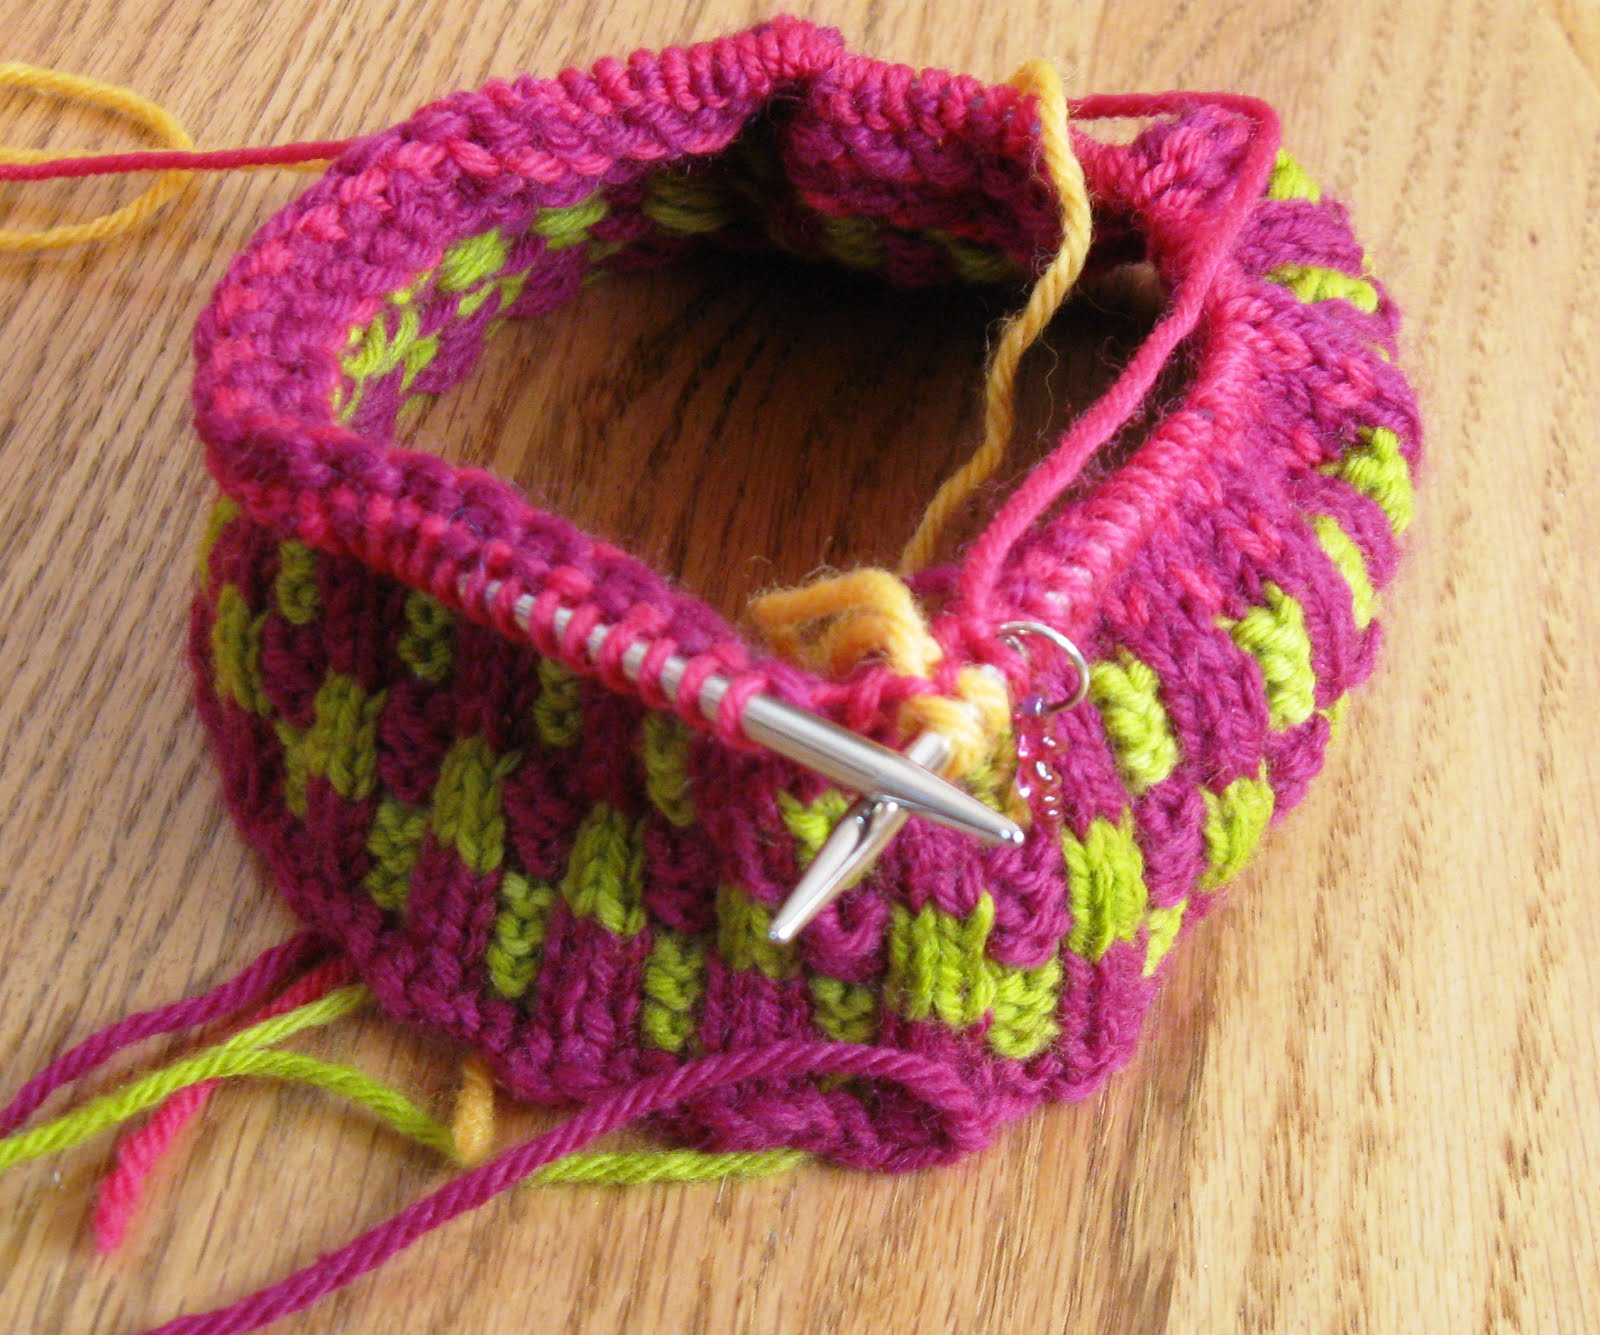 How To Knit Stitch On Circular Needles : Kiwi Knits: About Knitting Needles